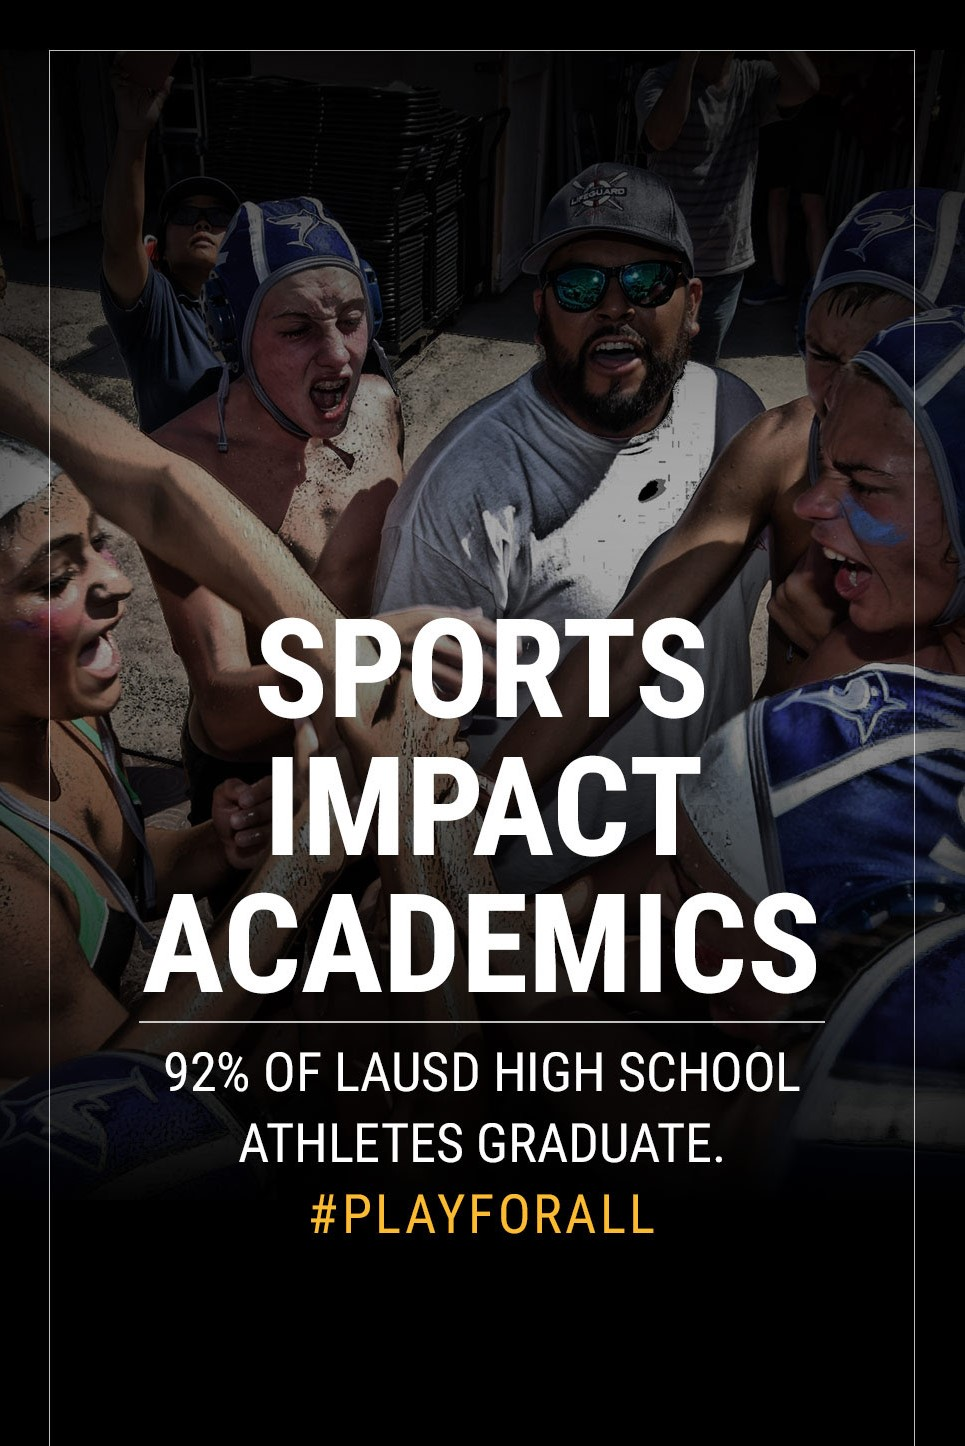 Sports Impact Academics 10-12-17 website